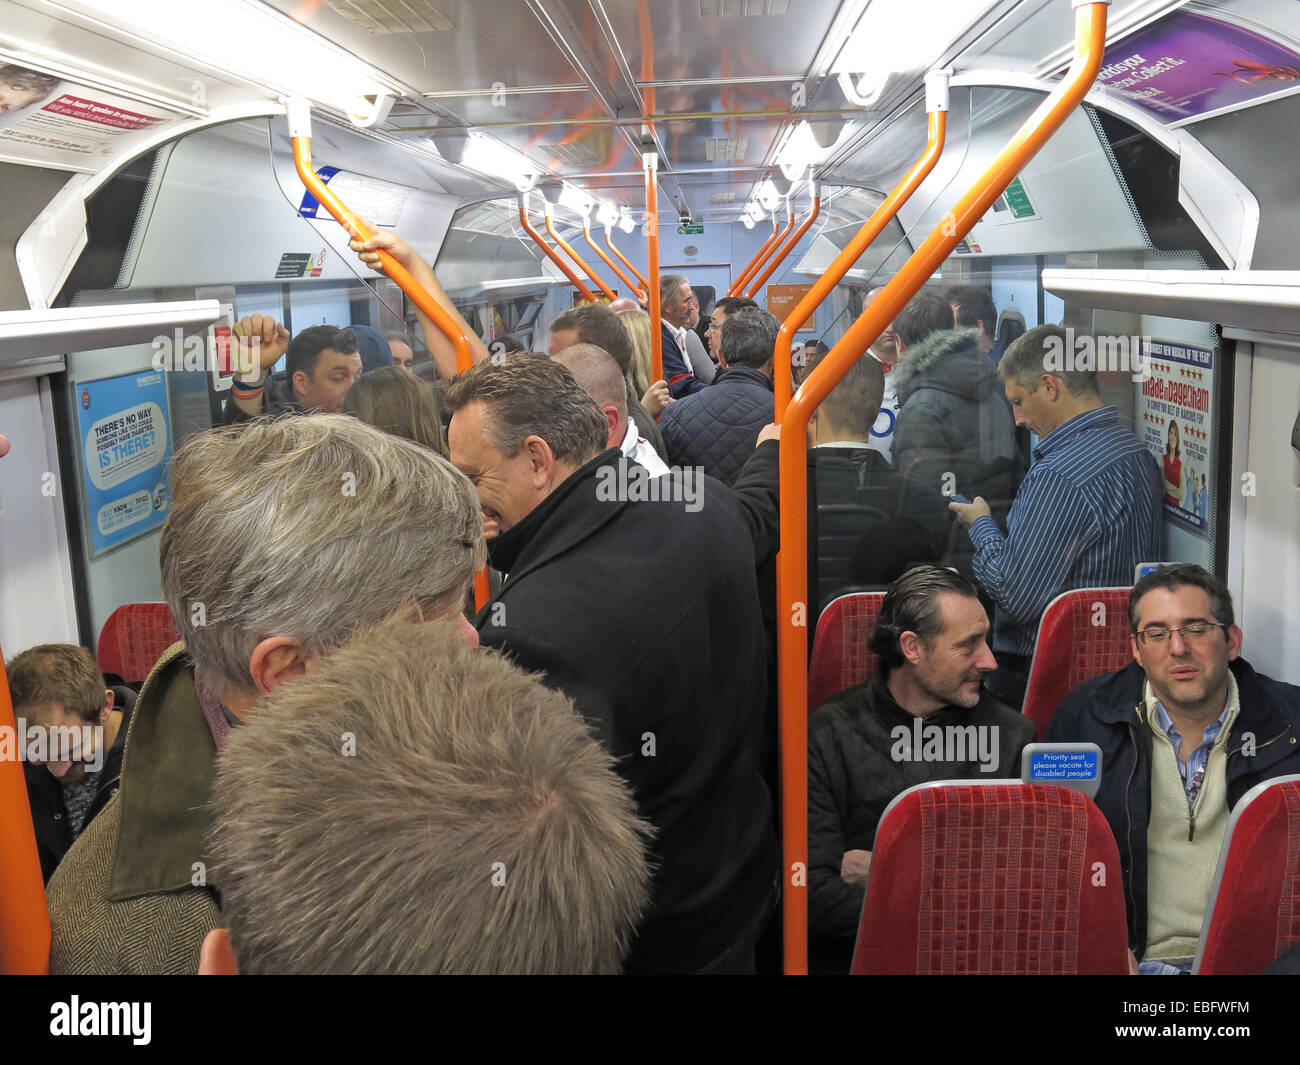 South,West,Trains,SWT,is,a,British,train,operating,company,owned,by,Stagecoach,Group,operating,the,South,Western,franchise,at,night,evening,crush,packed,commuter,peak,time,peaktime,public,transport,fail,failing,BR,British,Rail,service,award,awarded,subsidy,wasted,waste,of,expensive,ticket,GoTonySmith,Network,Rail,Clapham,jn,Junction,Junc,season,tickets,poor,complaint,complaints,Buy Pictures of,Buy Images Of